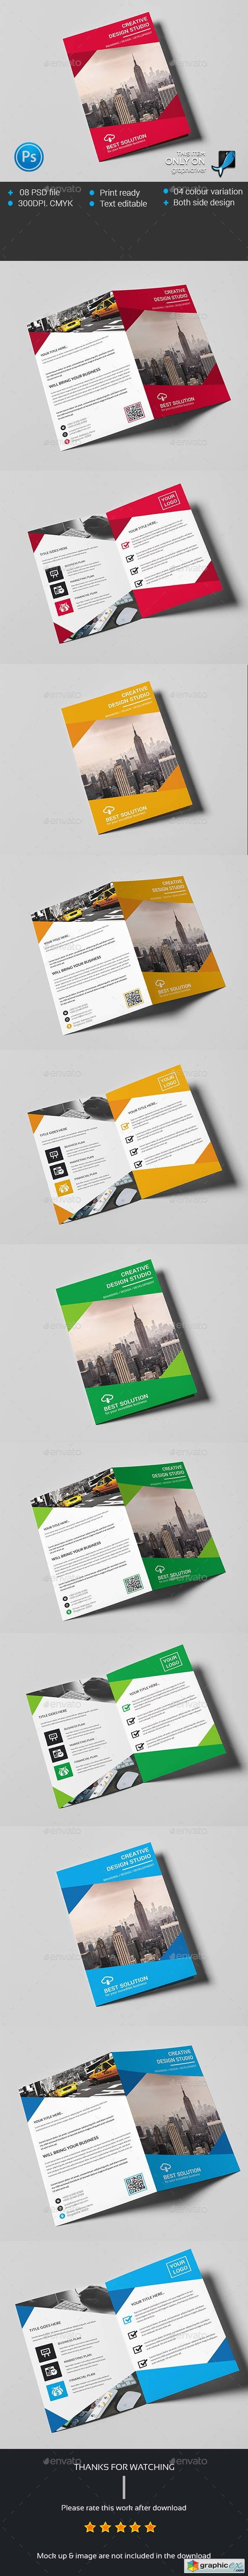 Corporate Business Bi-fold Brochure 13948978